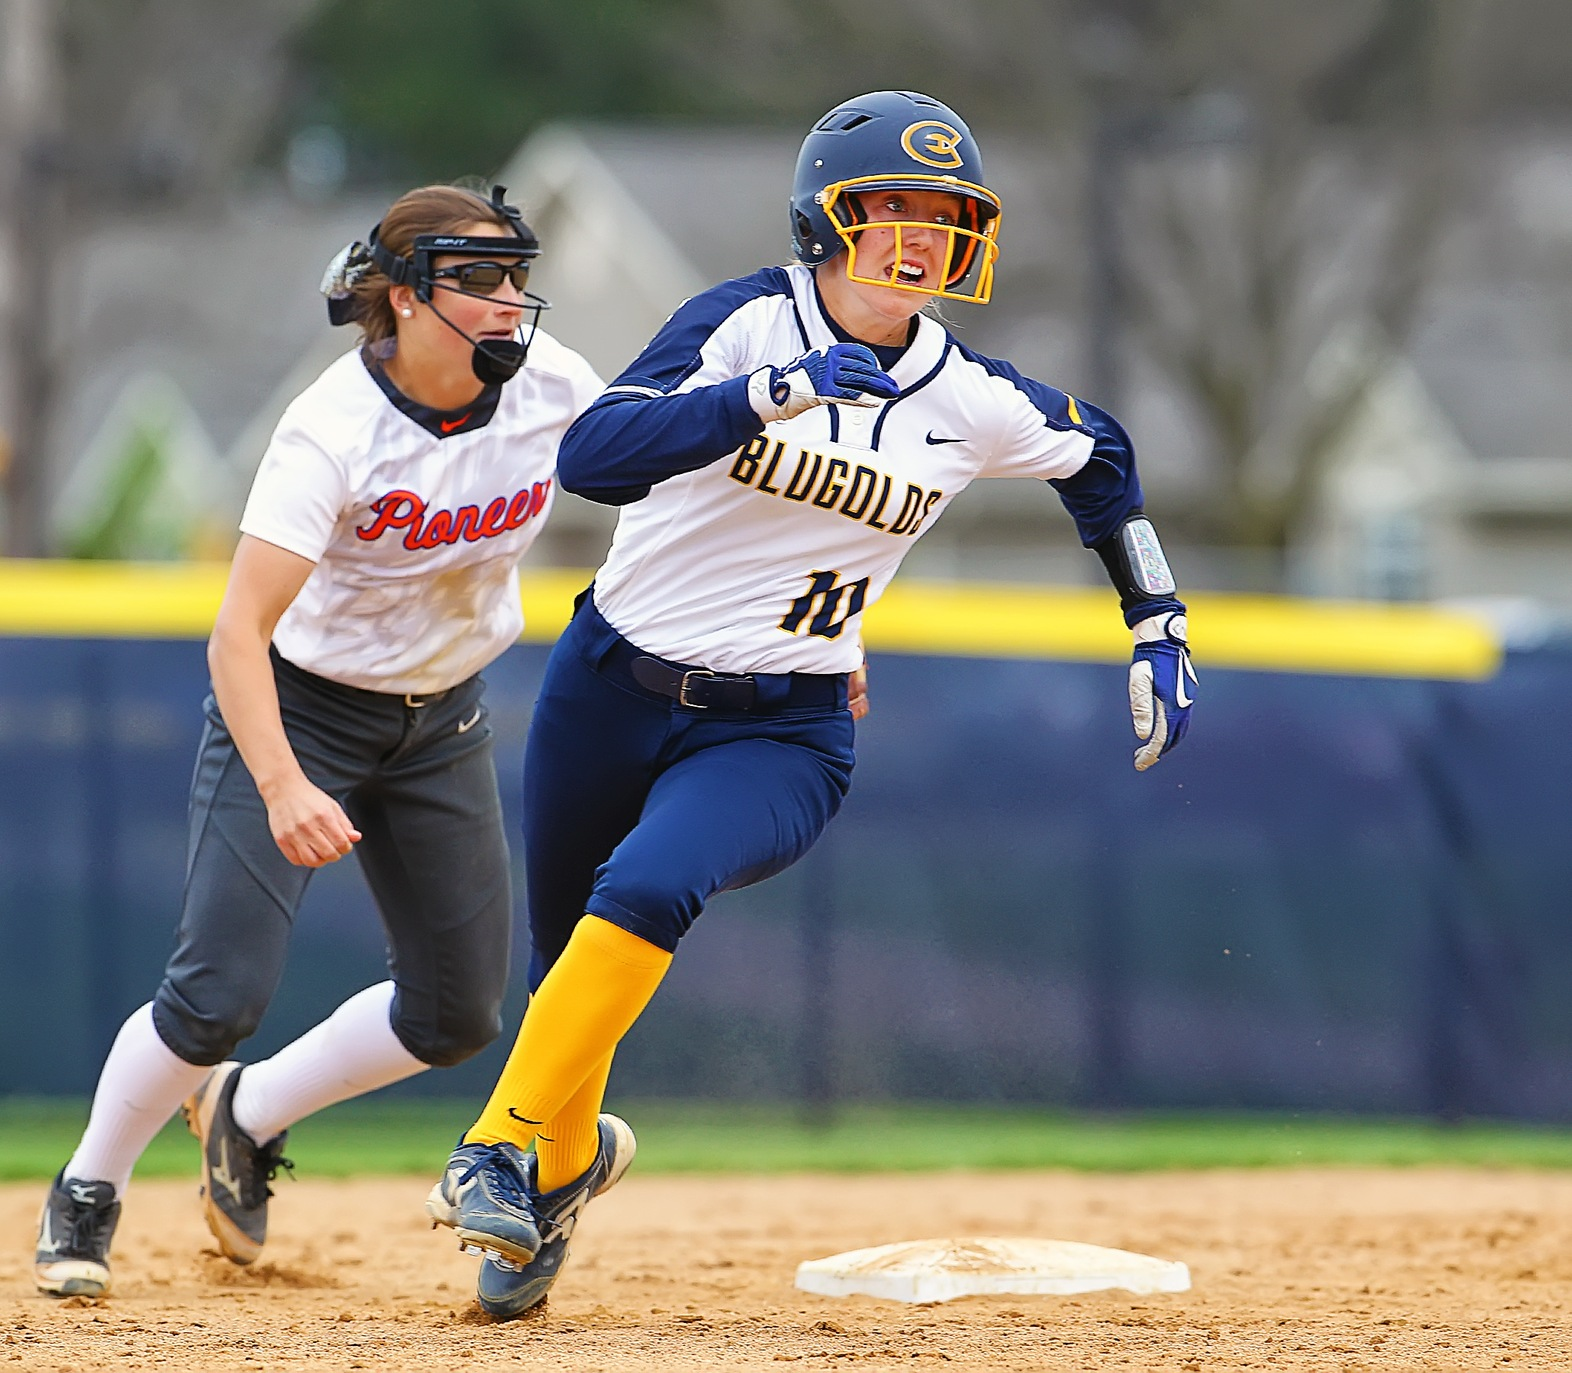 Blugolds kick off Spring Break trip with pair of victories